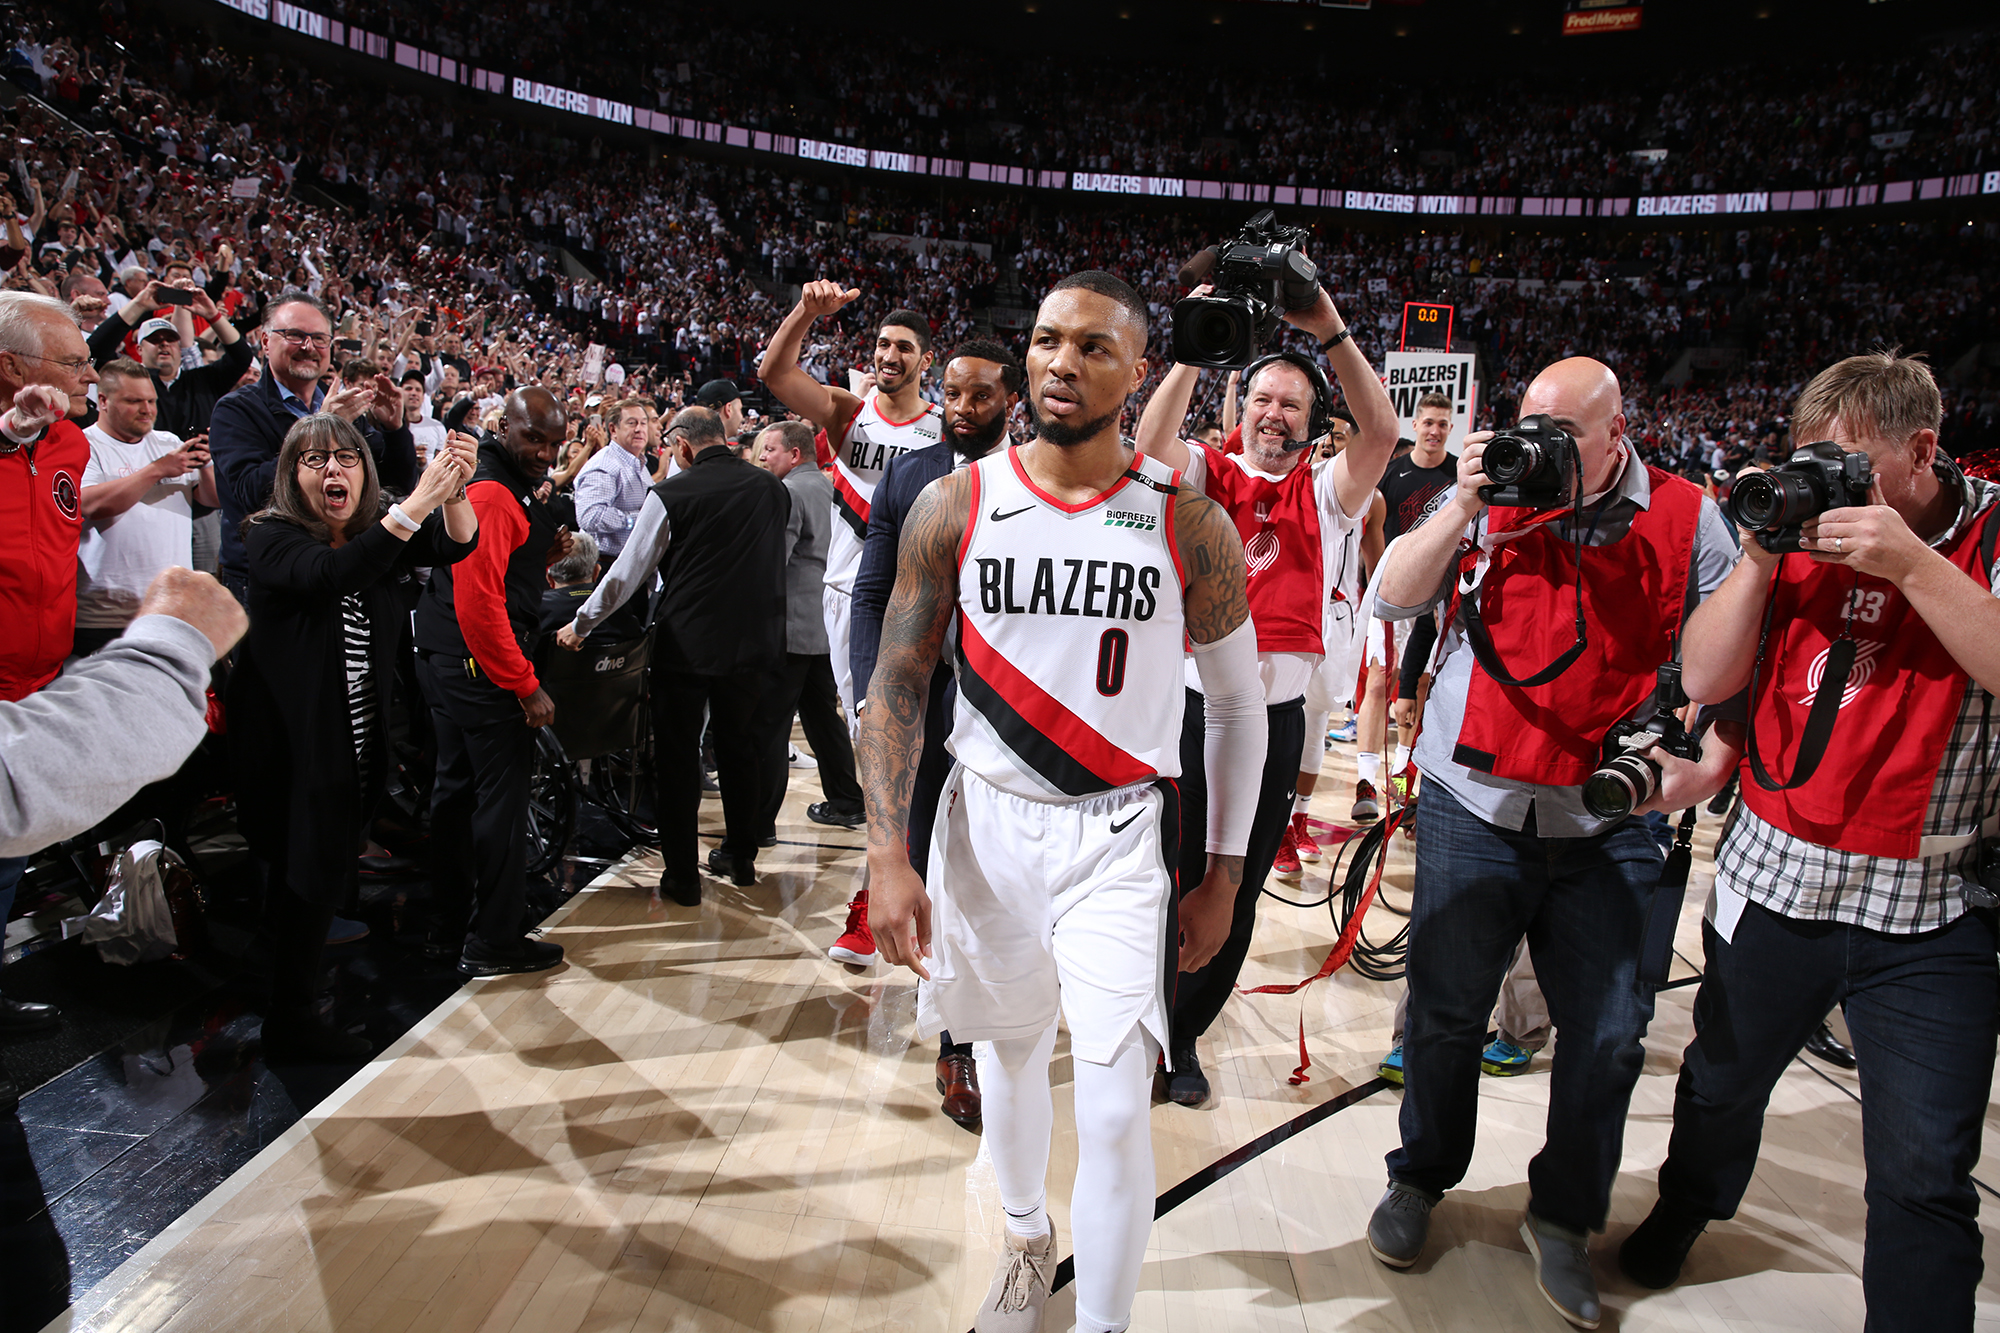 Damian Lillard walks off after post-game celebration in the first round of the NBA Playoffs (Photo by: Washington Post).